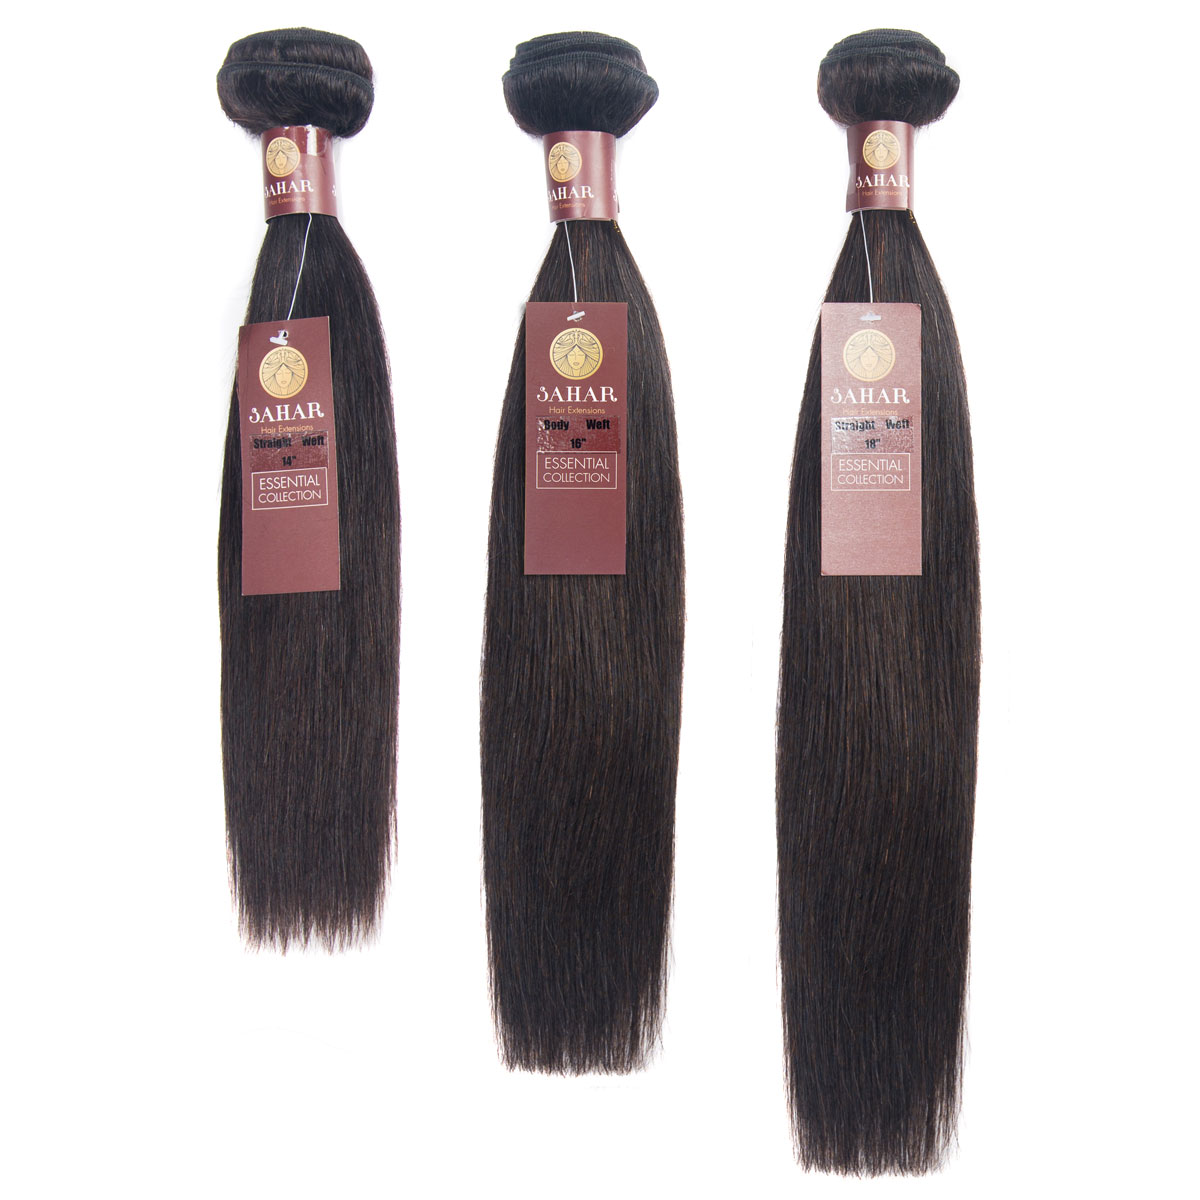 Sahar Essential Unprocessed Brazilian Virgin Weft Hair Extensions Bundle (300g) - Straight